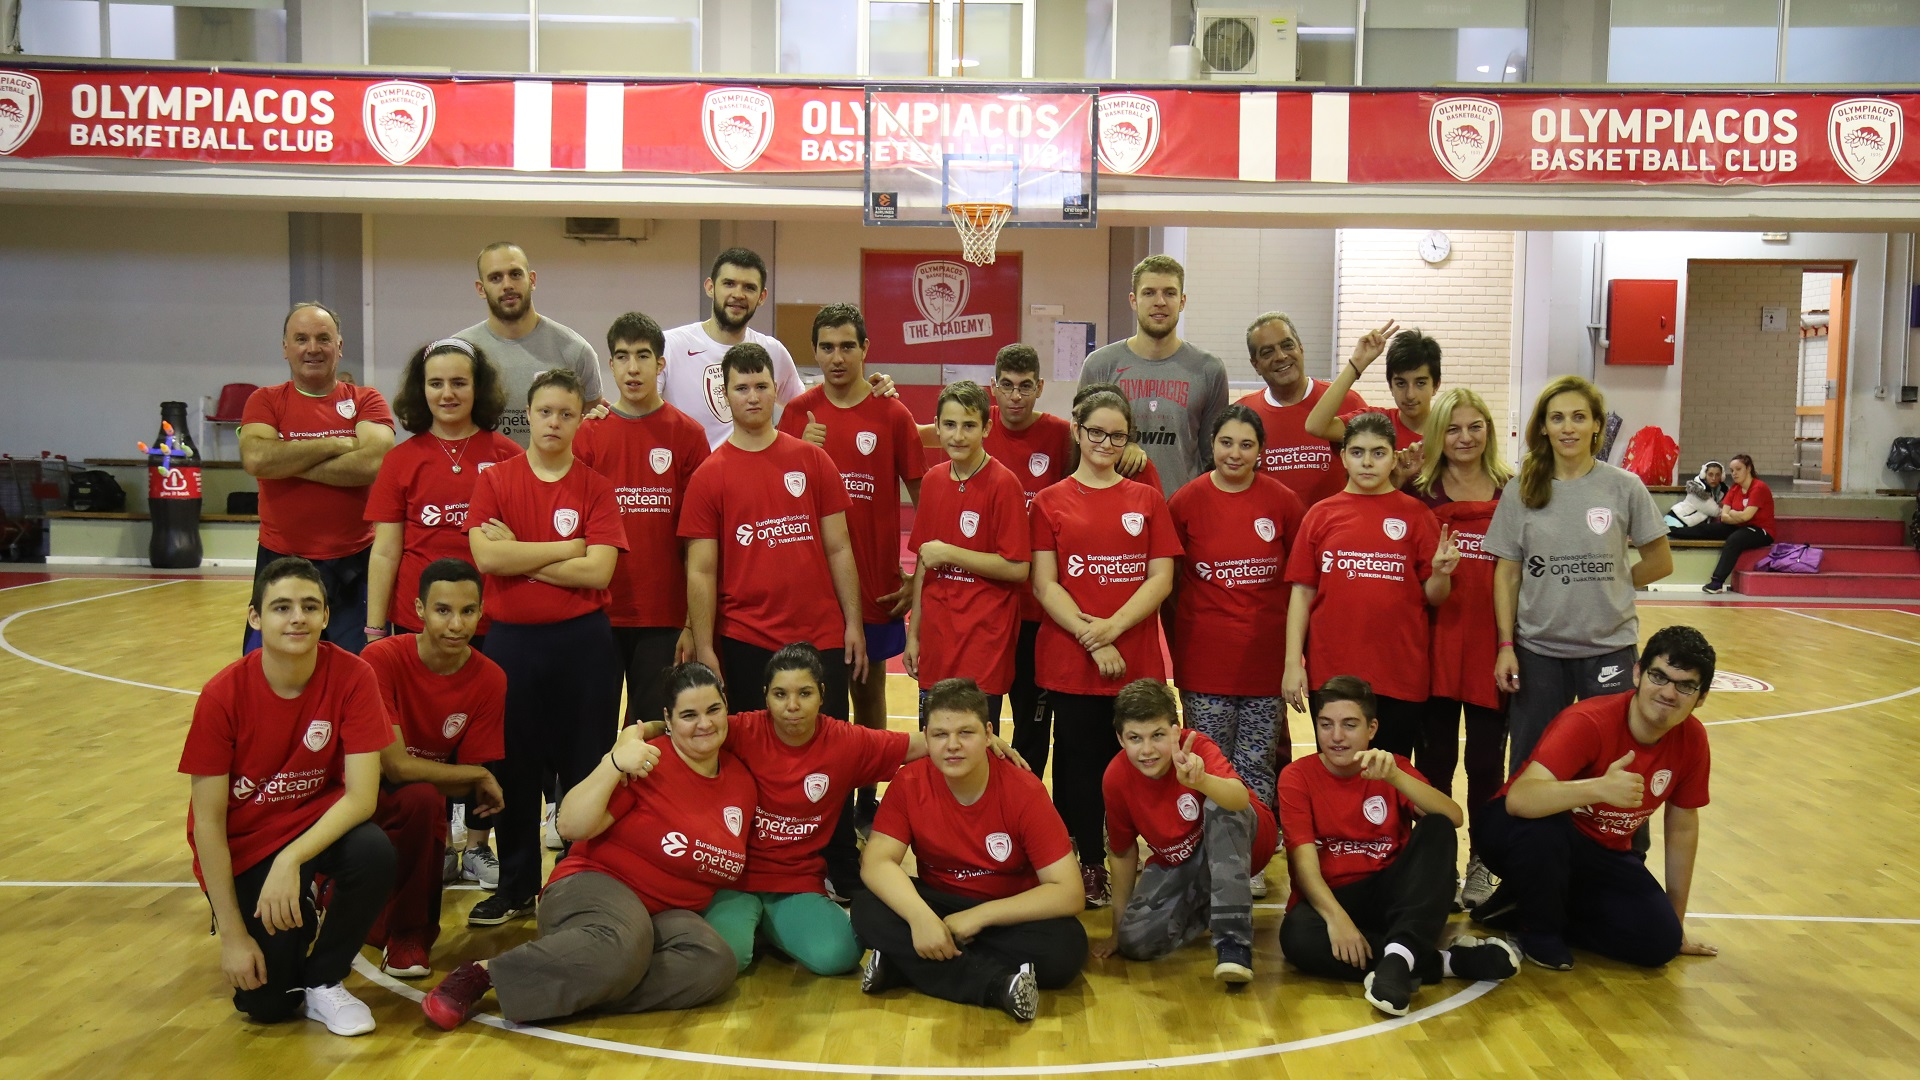 OneTeam Best Program: 2nd place for Olympiacos!